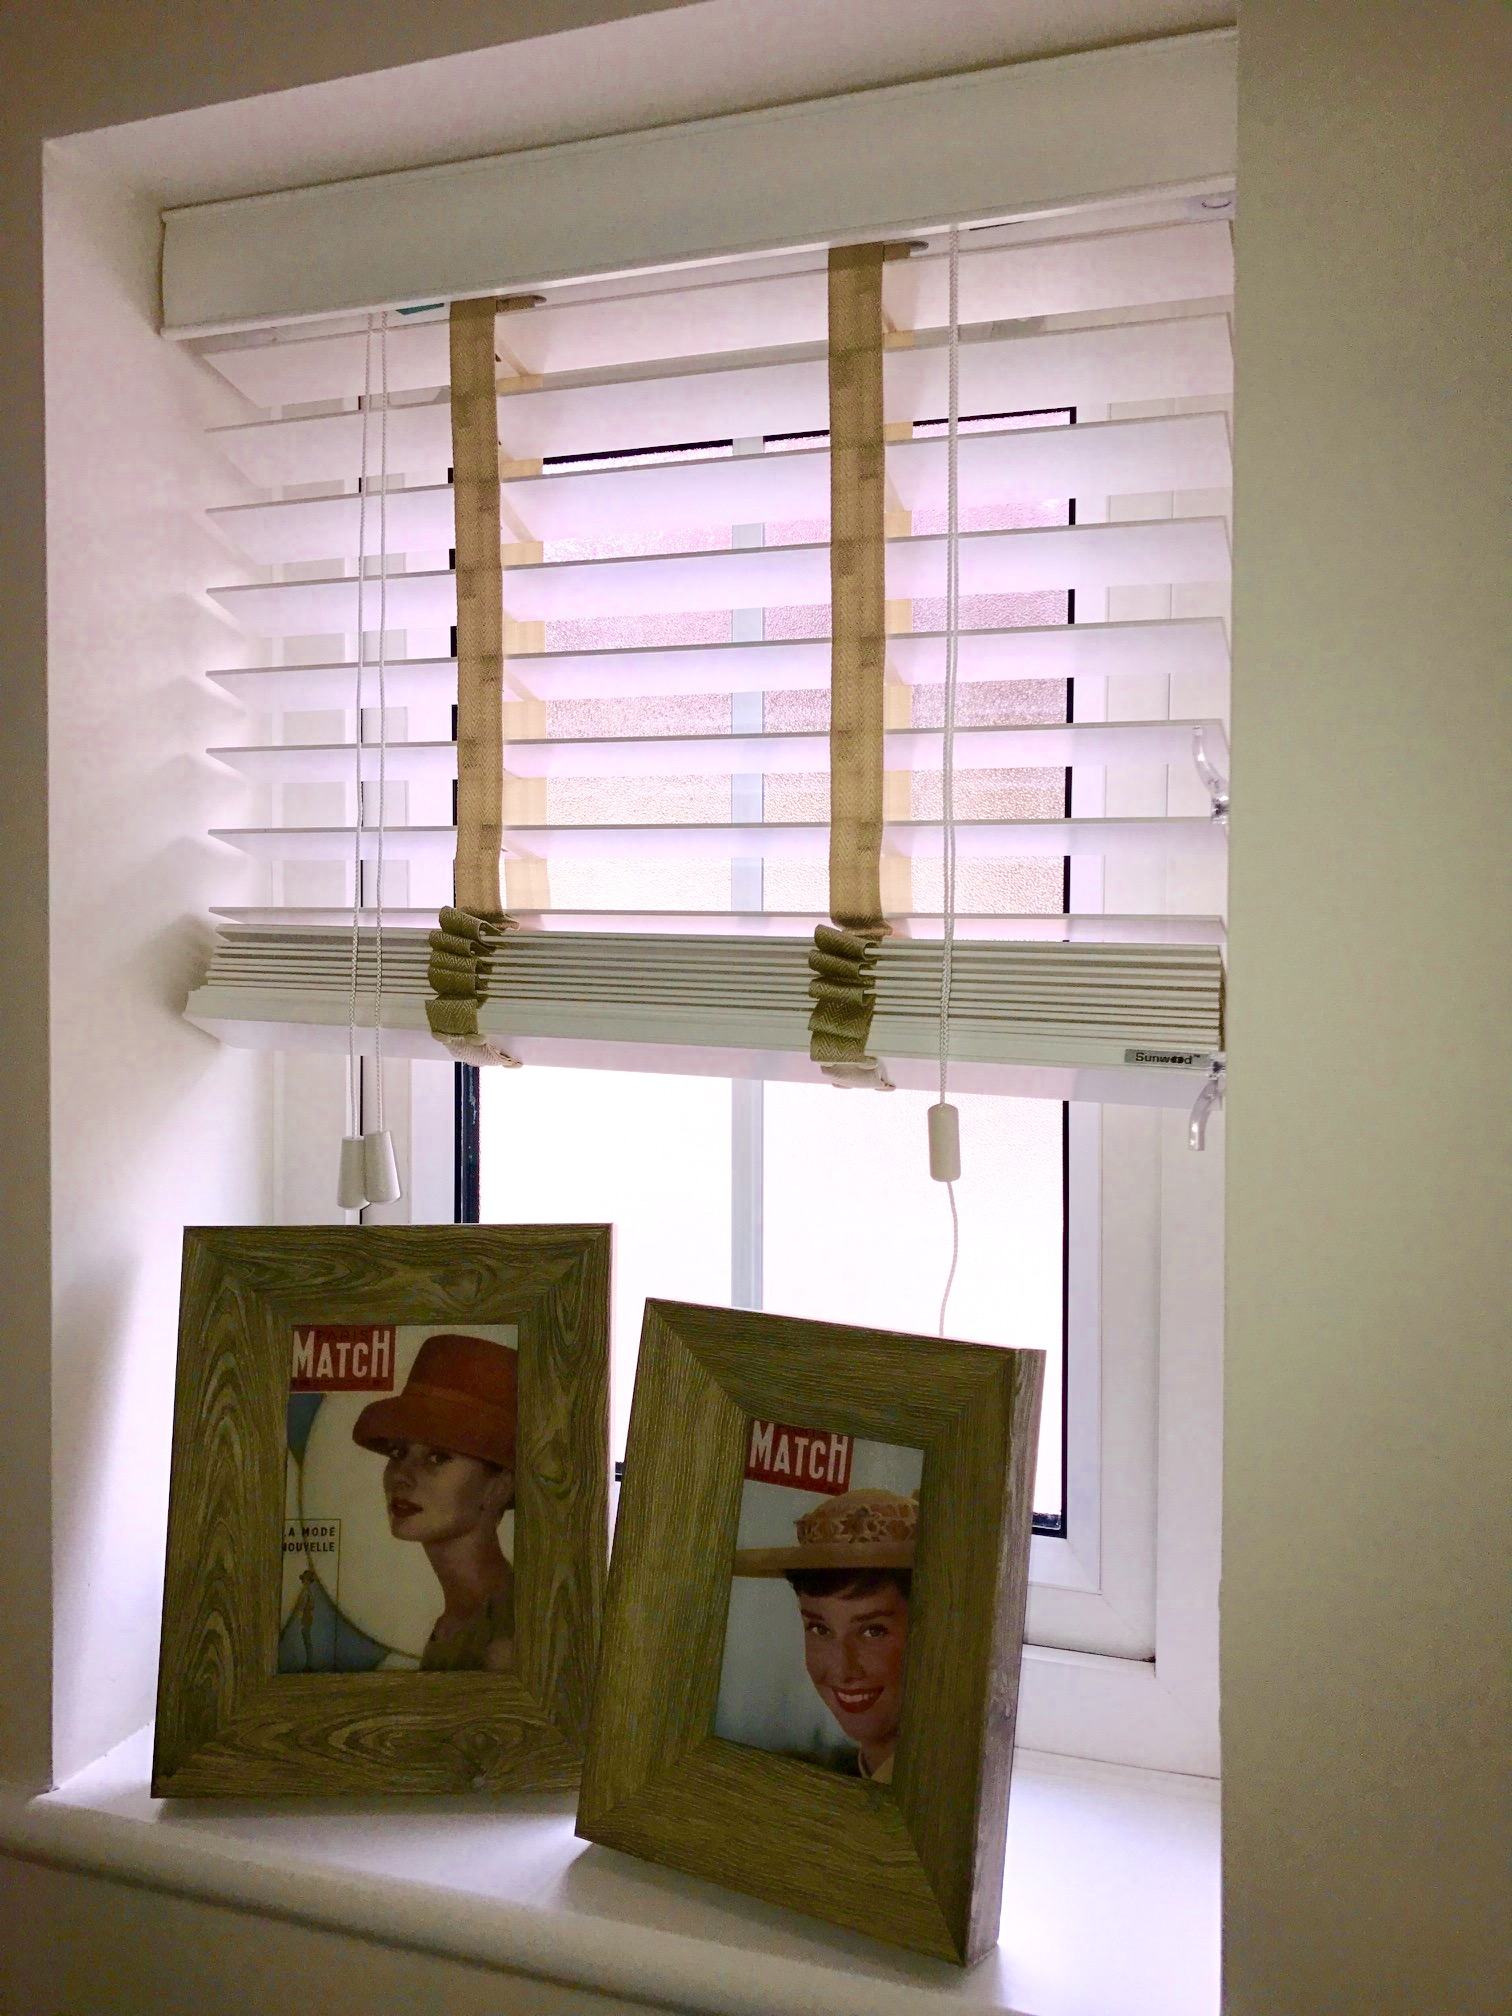 Two picture frames on a window sill